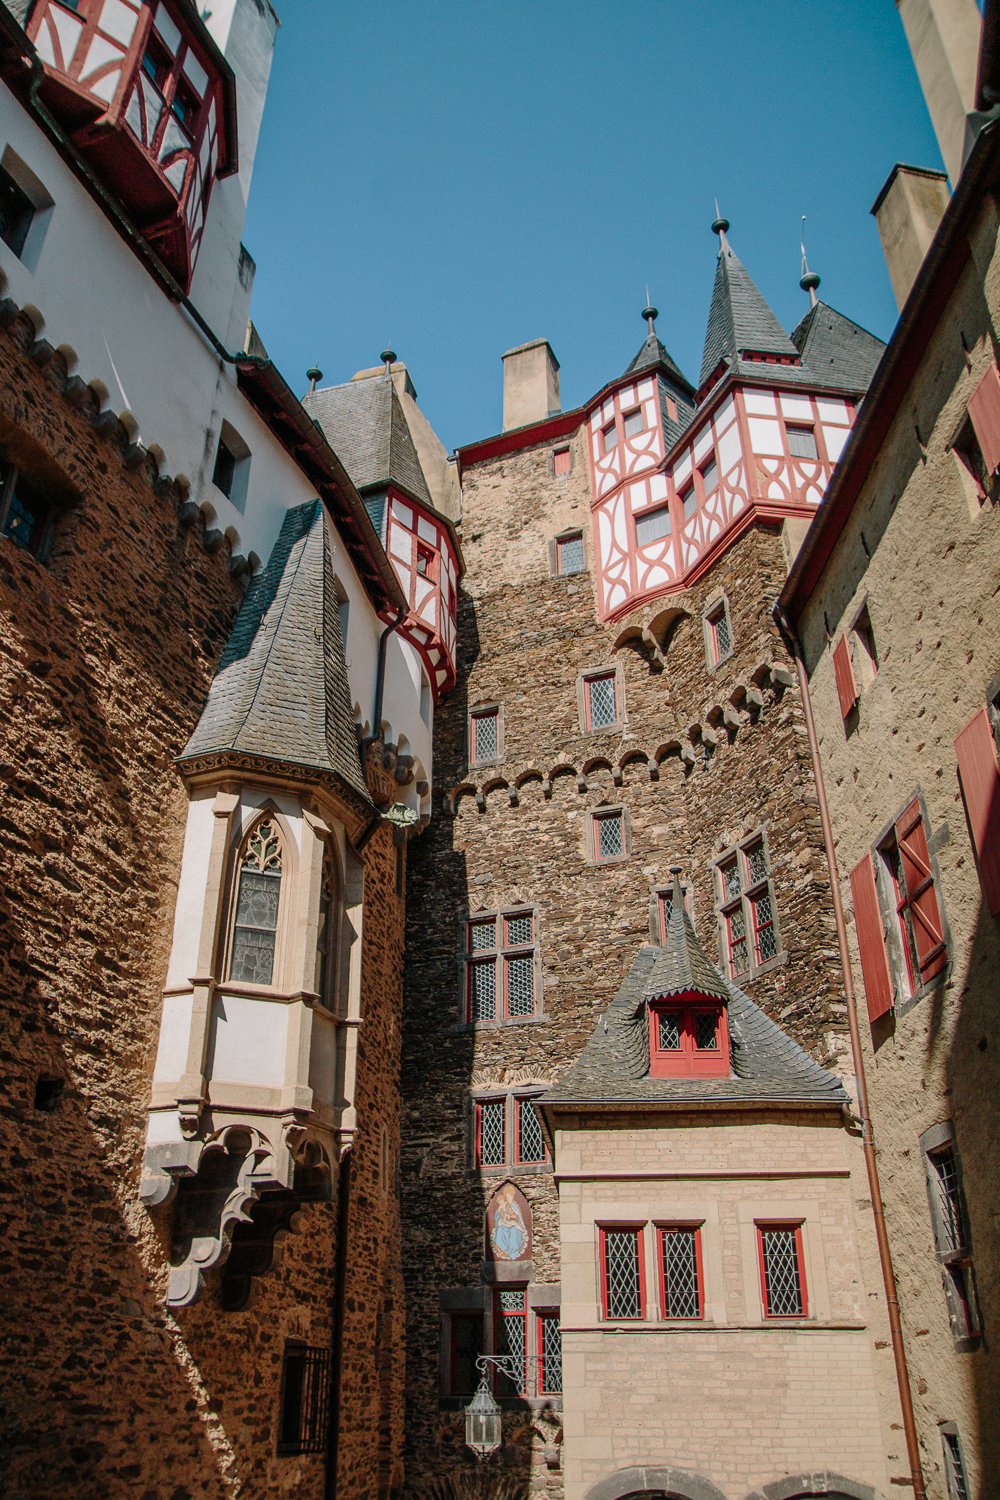 Courtyard at Burg Eltz Castle